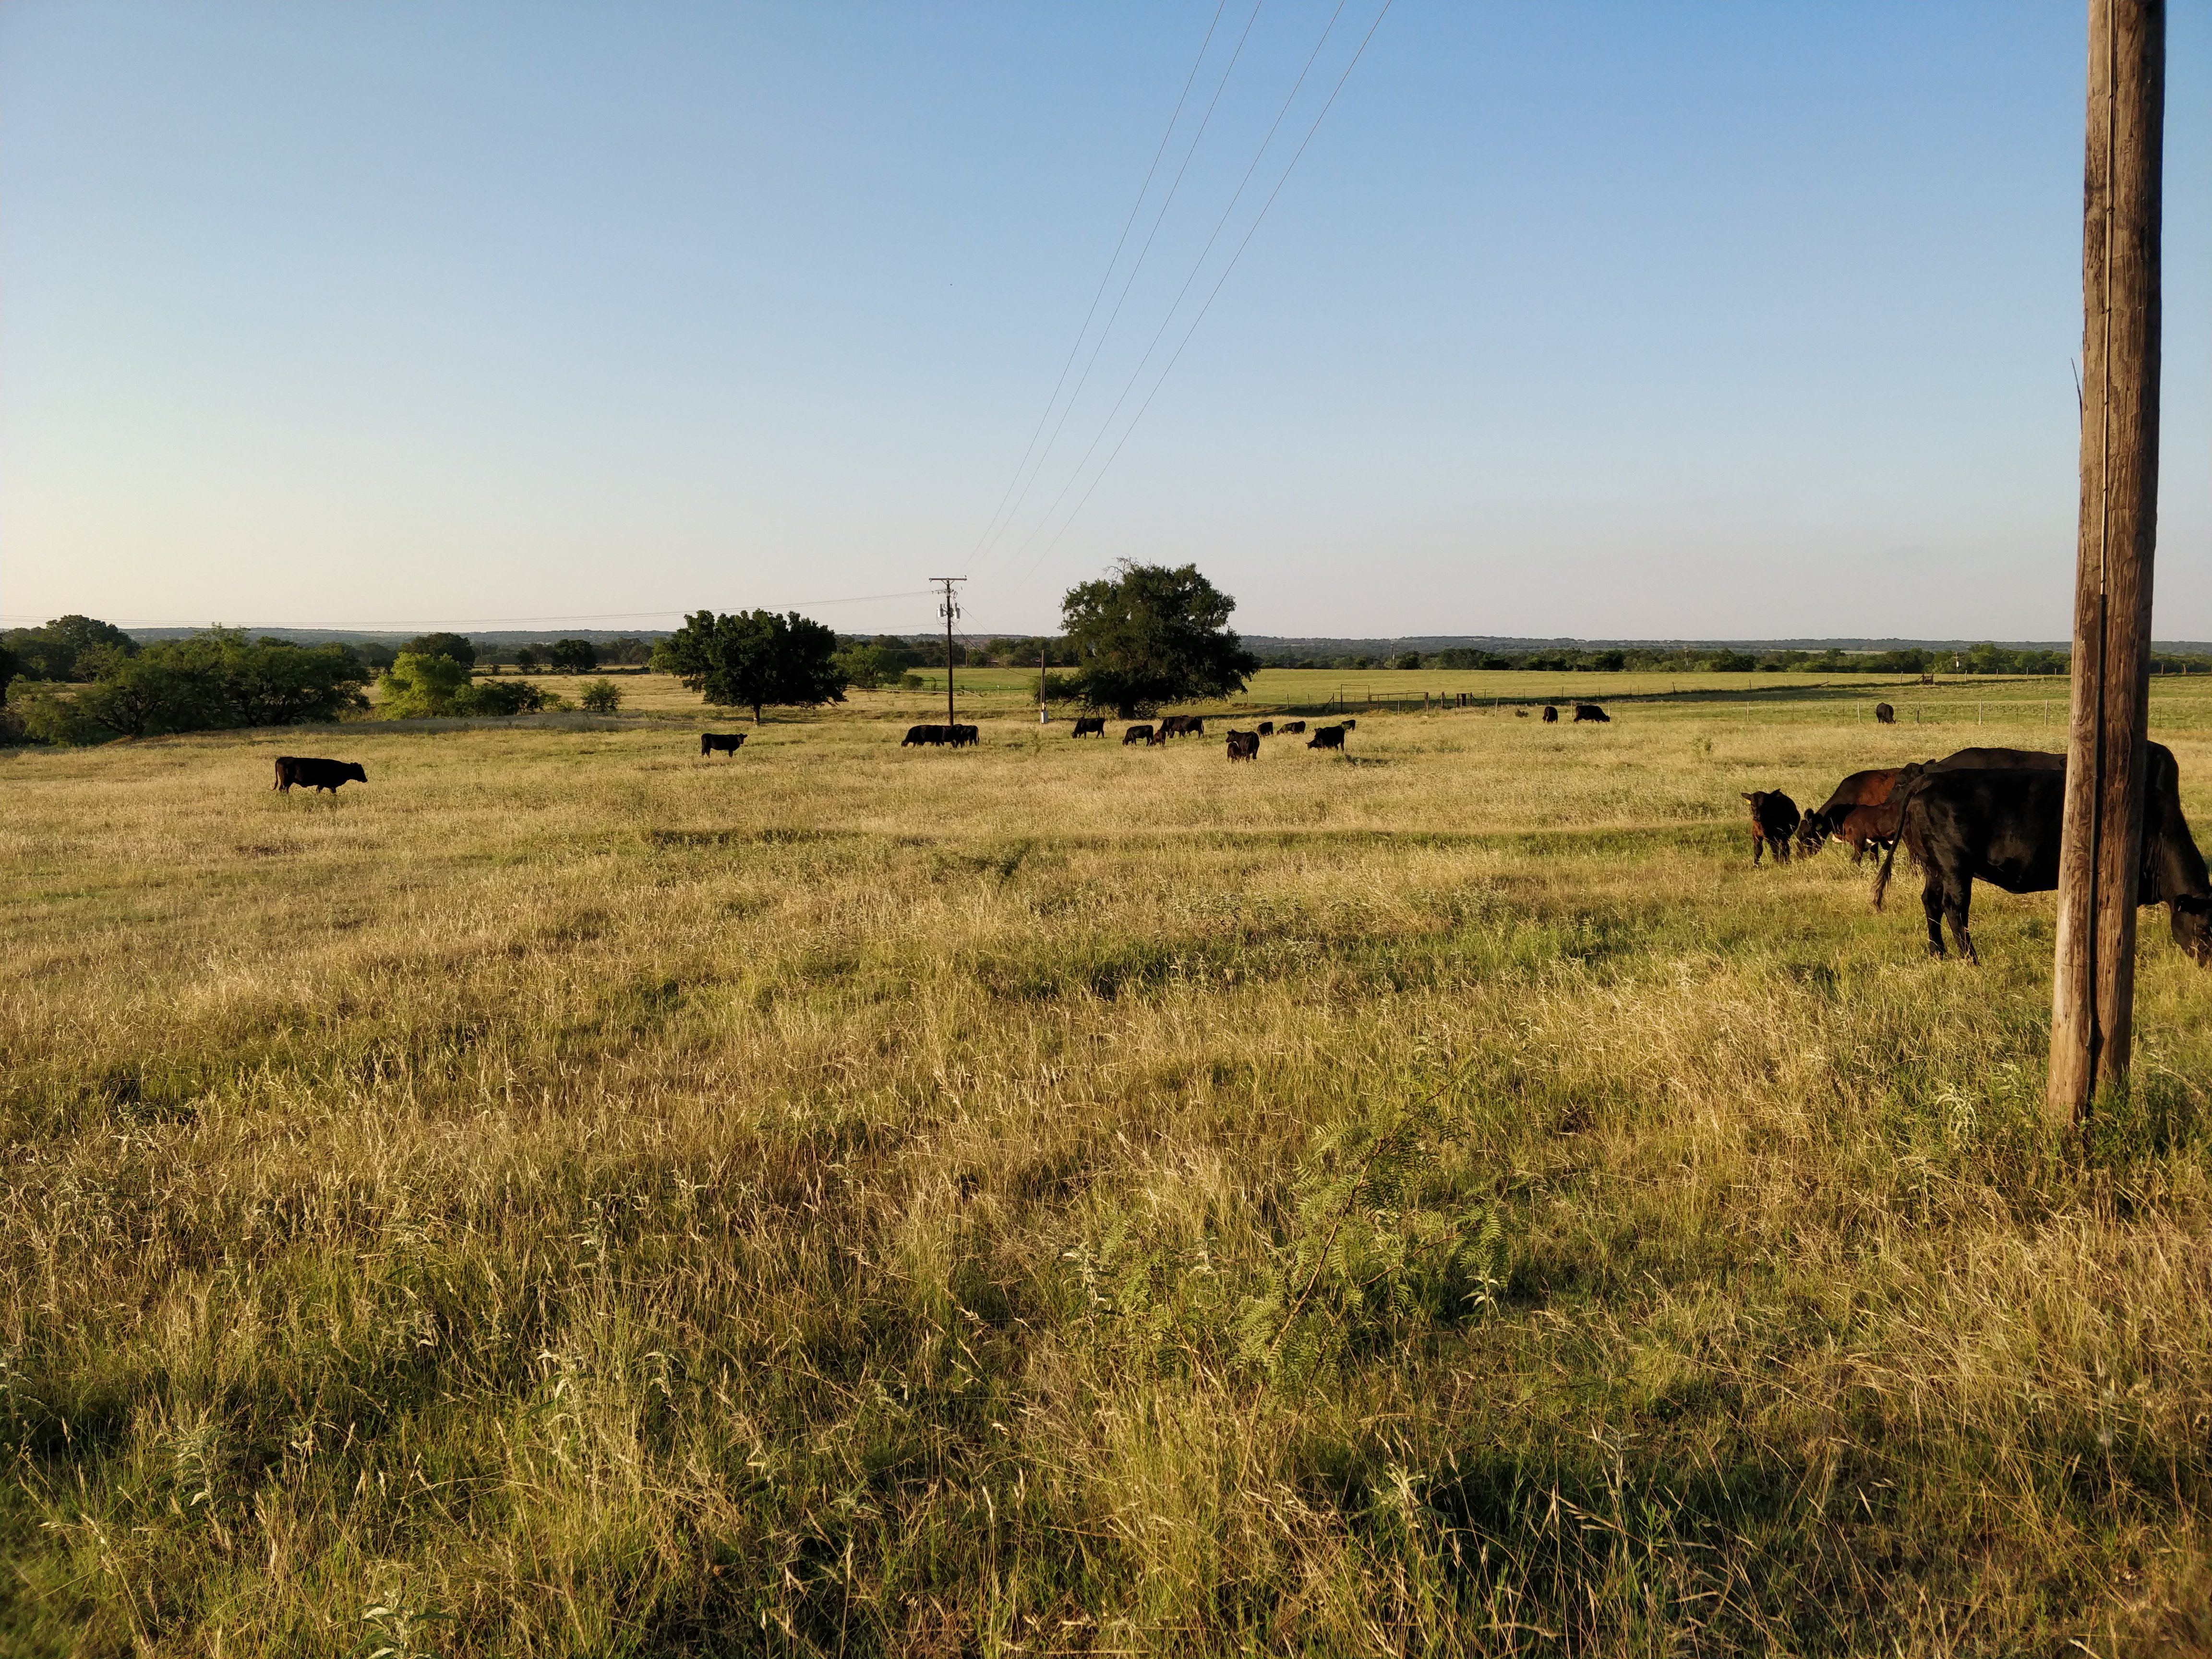 cattle on pasture, June 2020